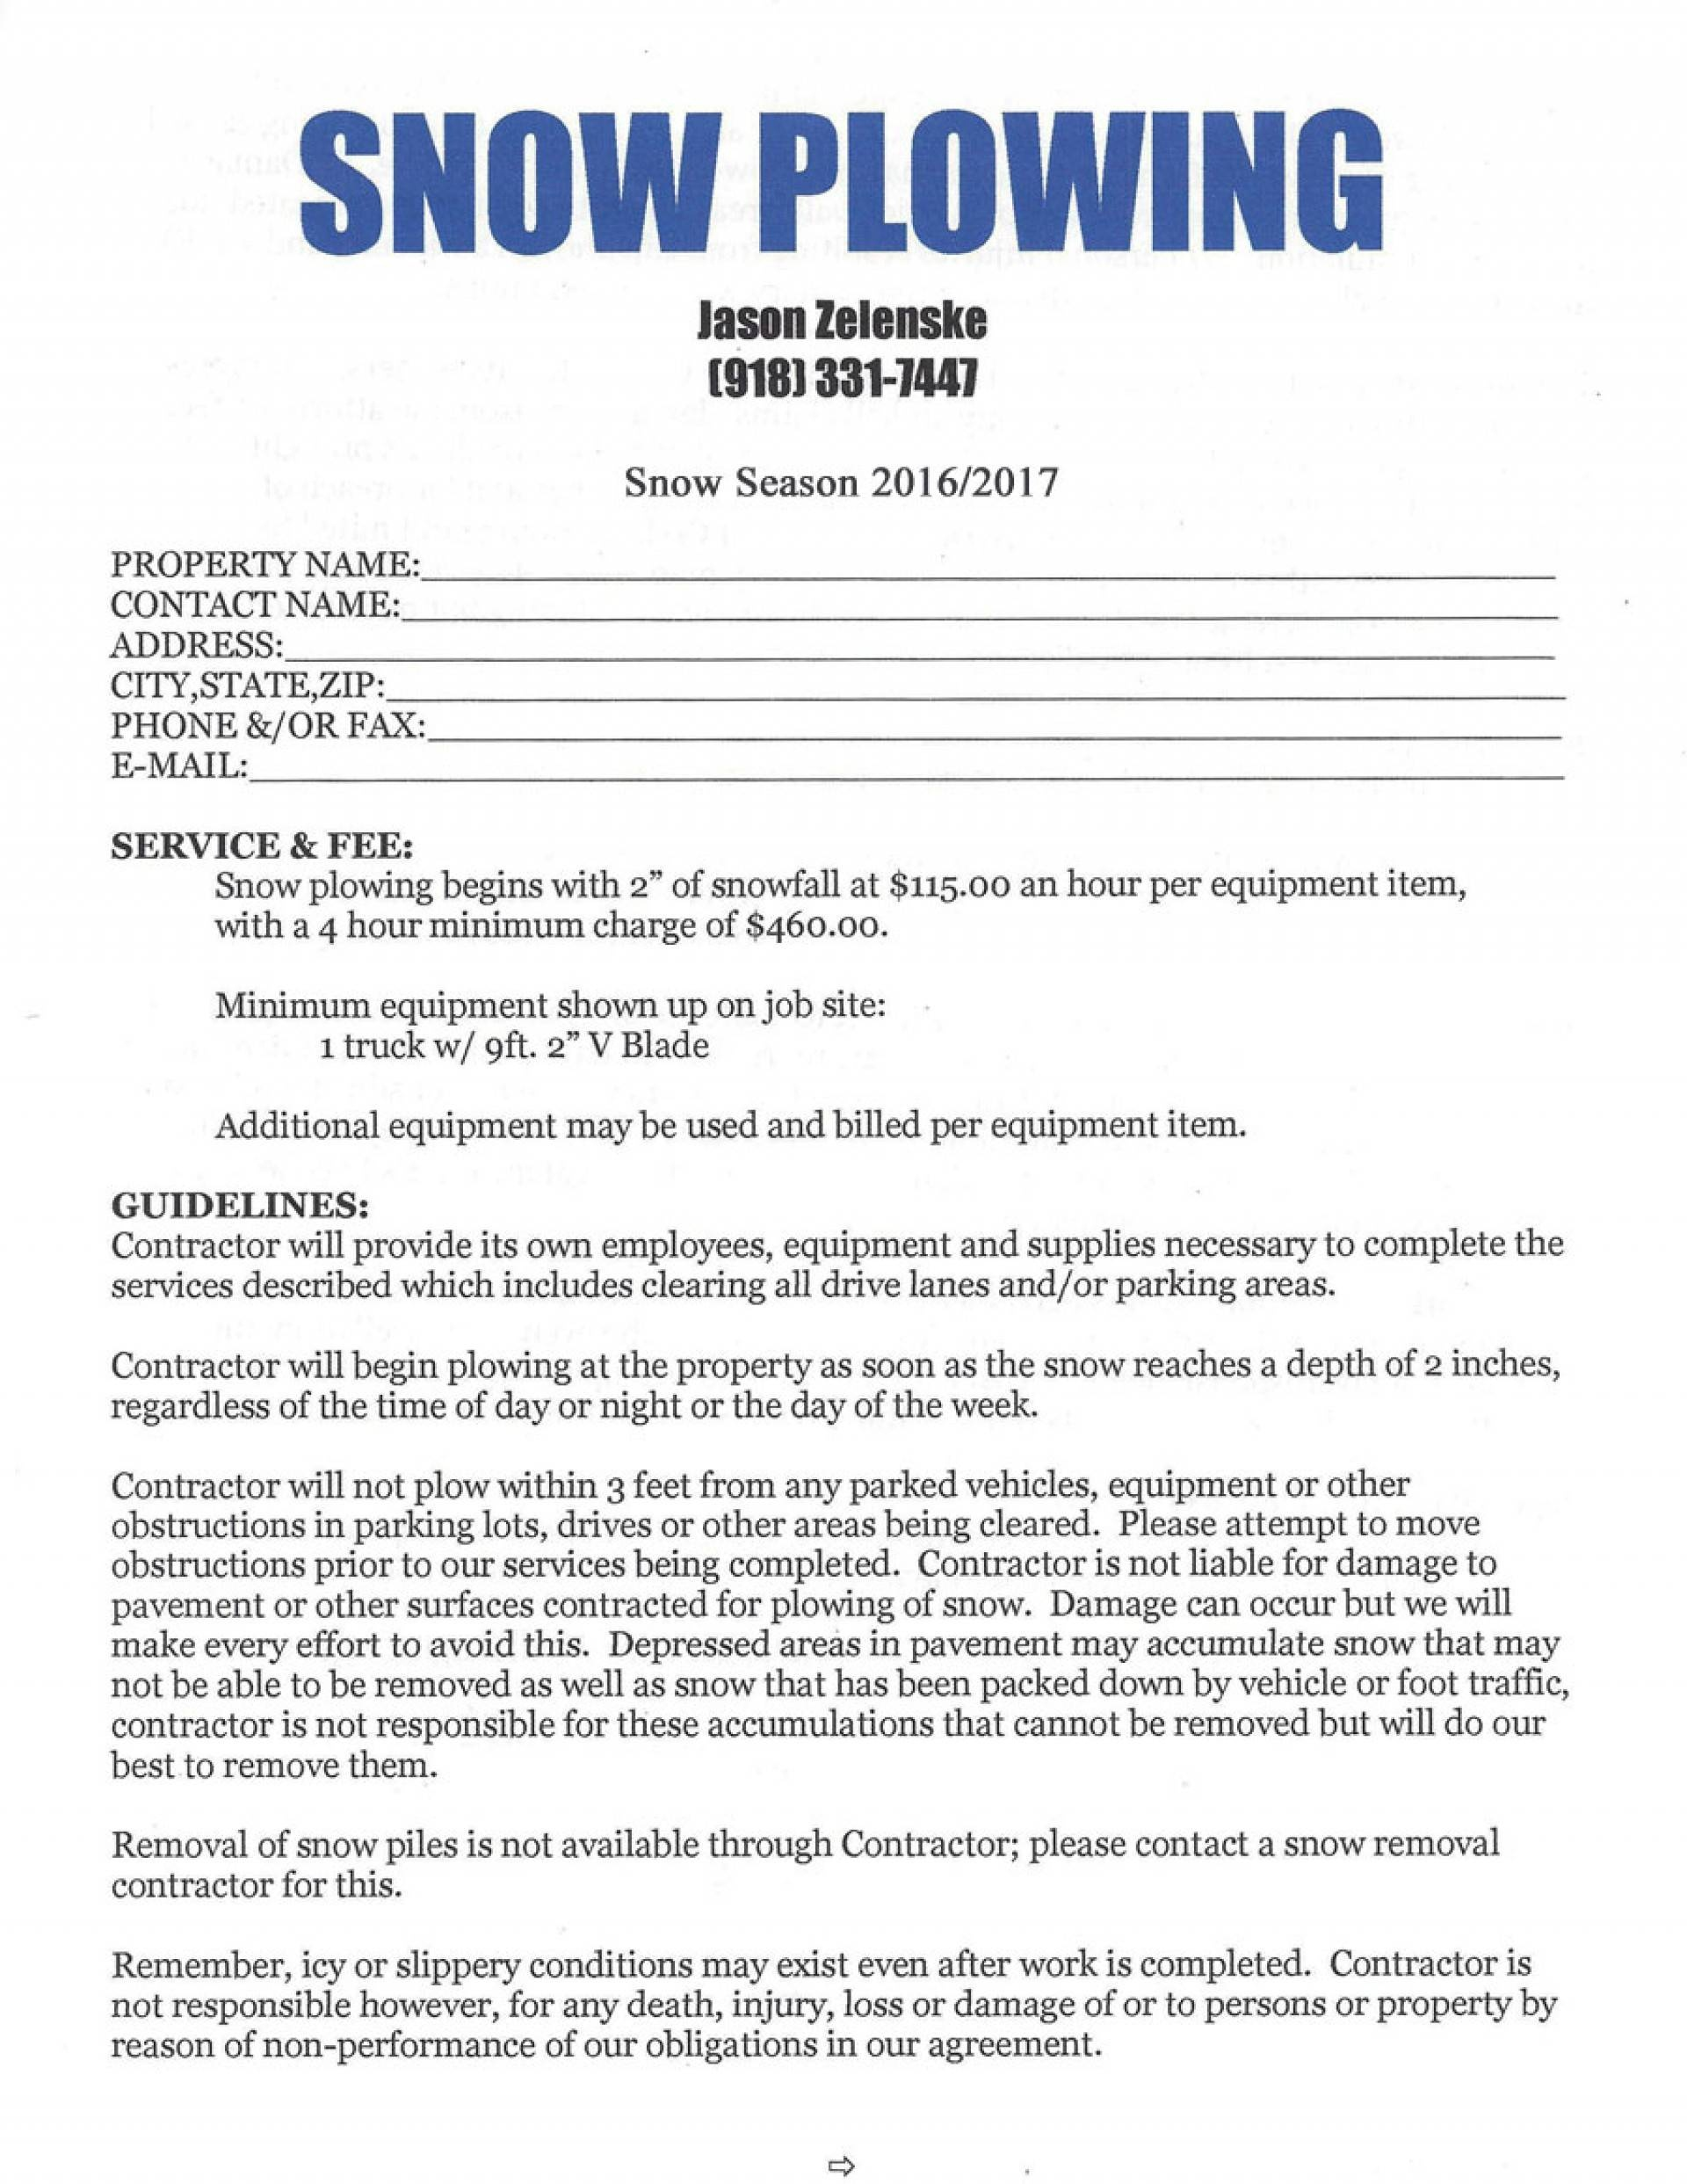 002 Simple Snow Plow Contract Template Removal Stupendous Ideas - Free Printable Snow Removal Contract